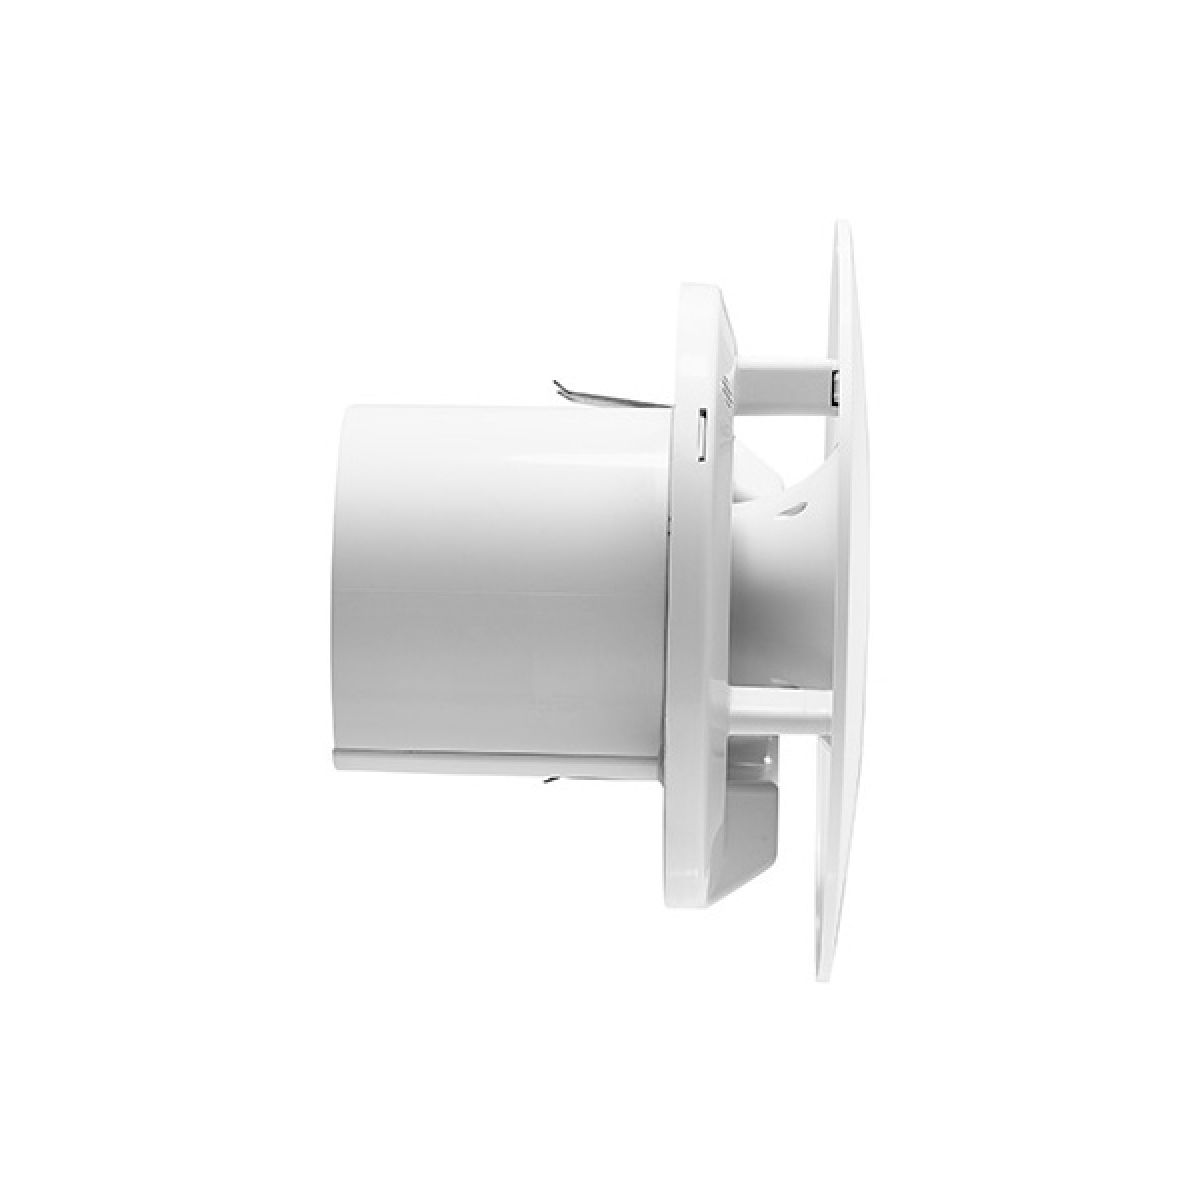 Xpelair Simply Silent Contour Round Bathroom Fan with Timer 100mm - Side